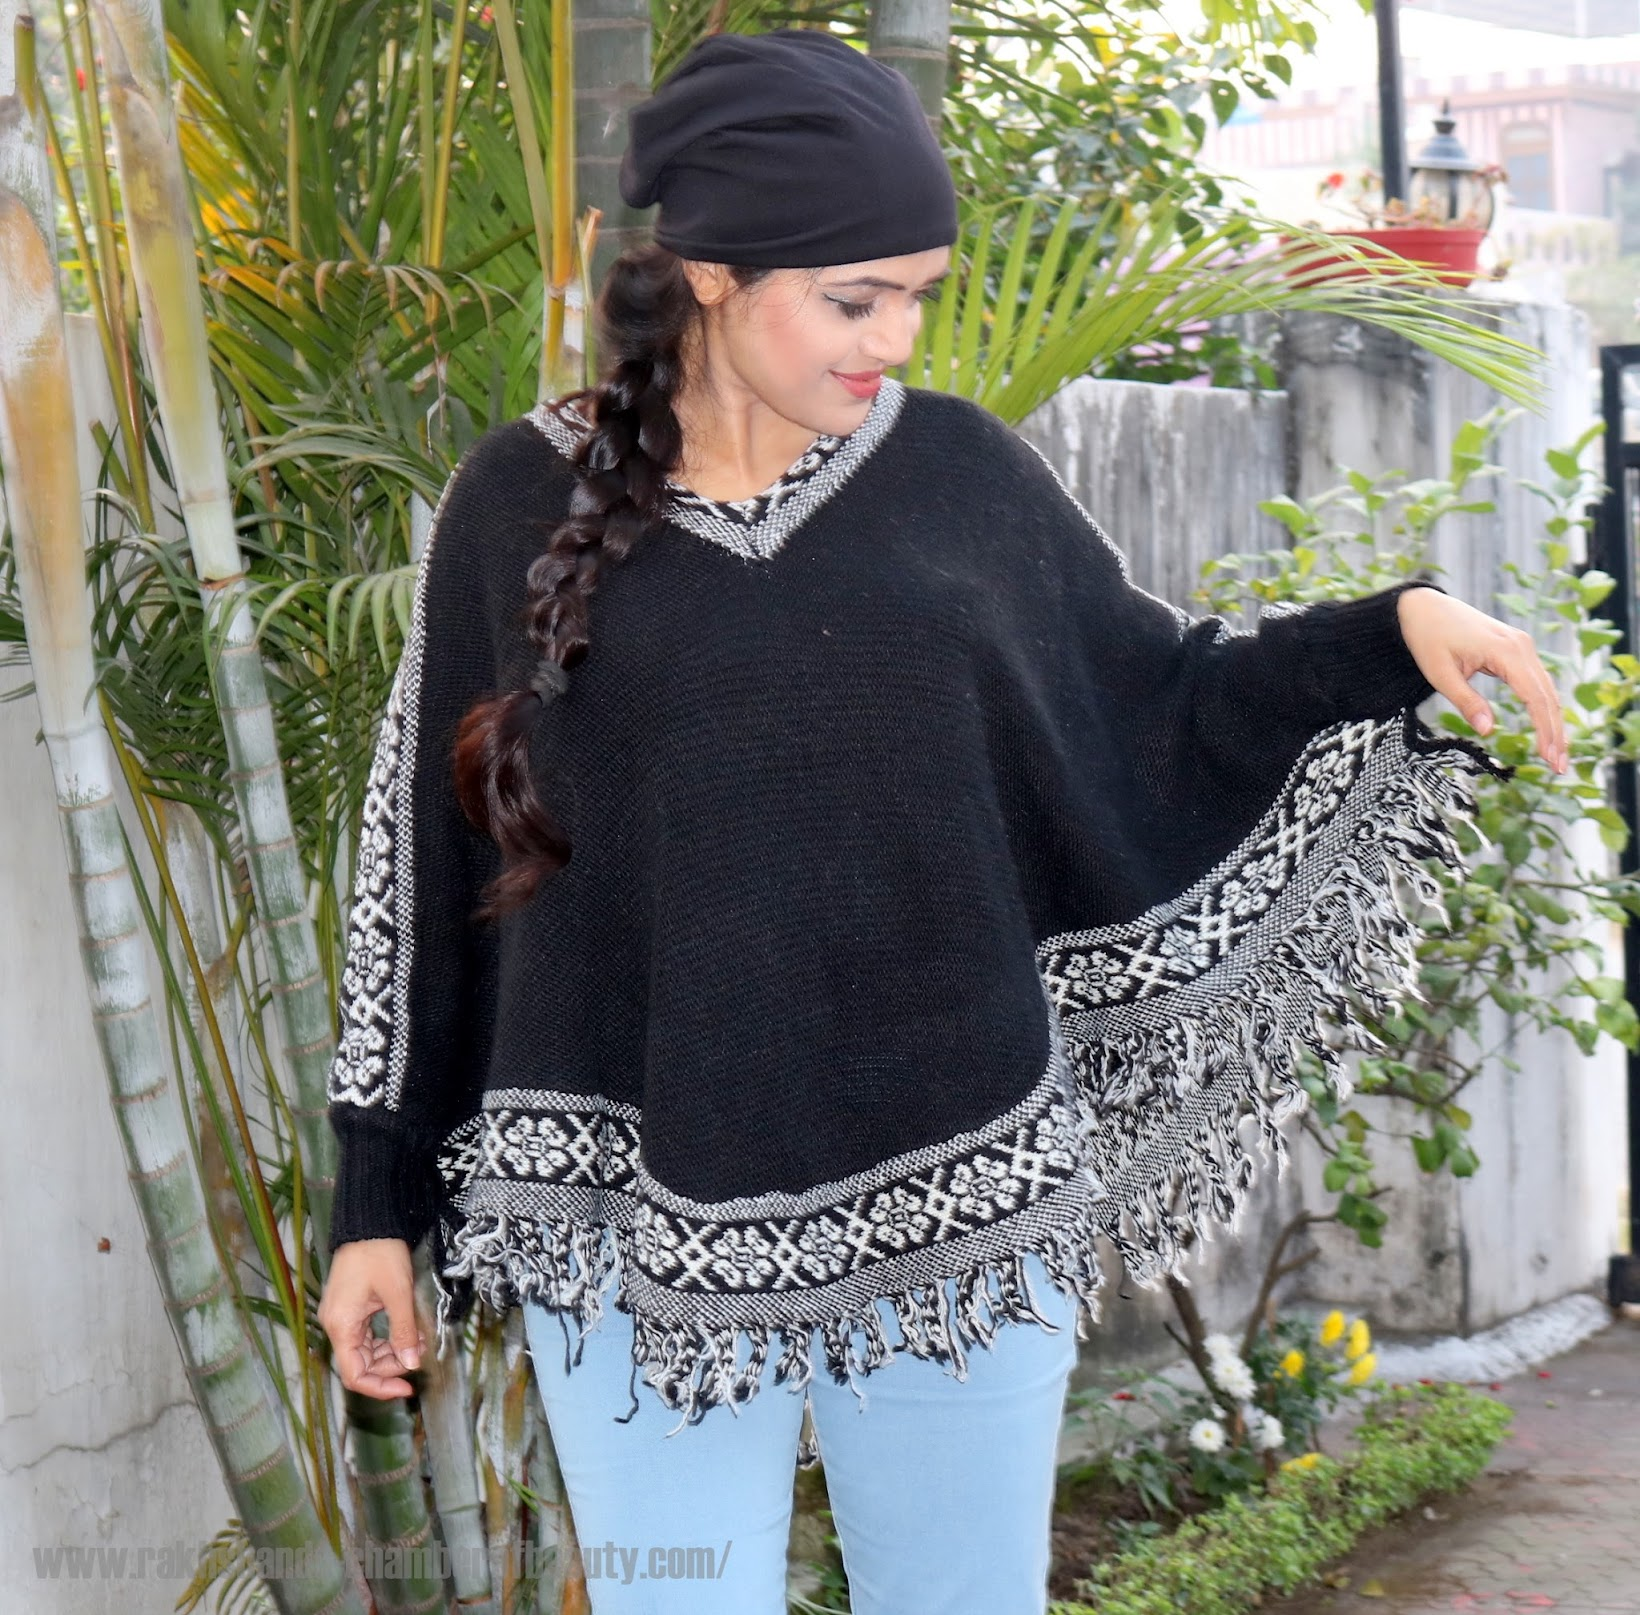 Styling a knitted poncho in winters ft. wholesalebuying.com